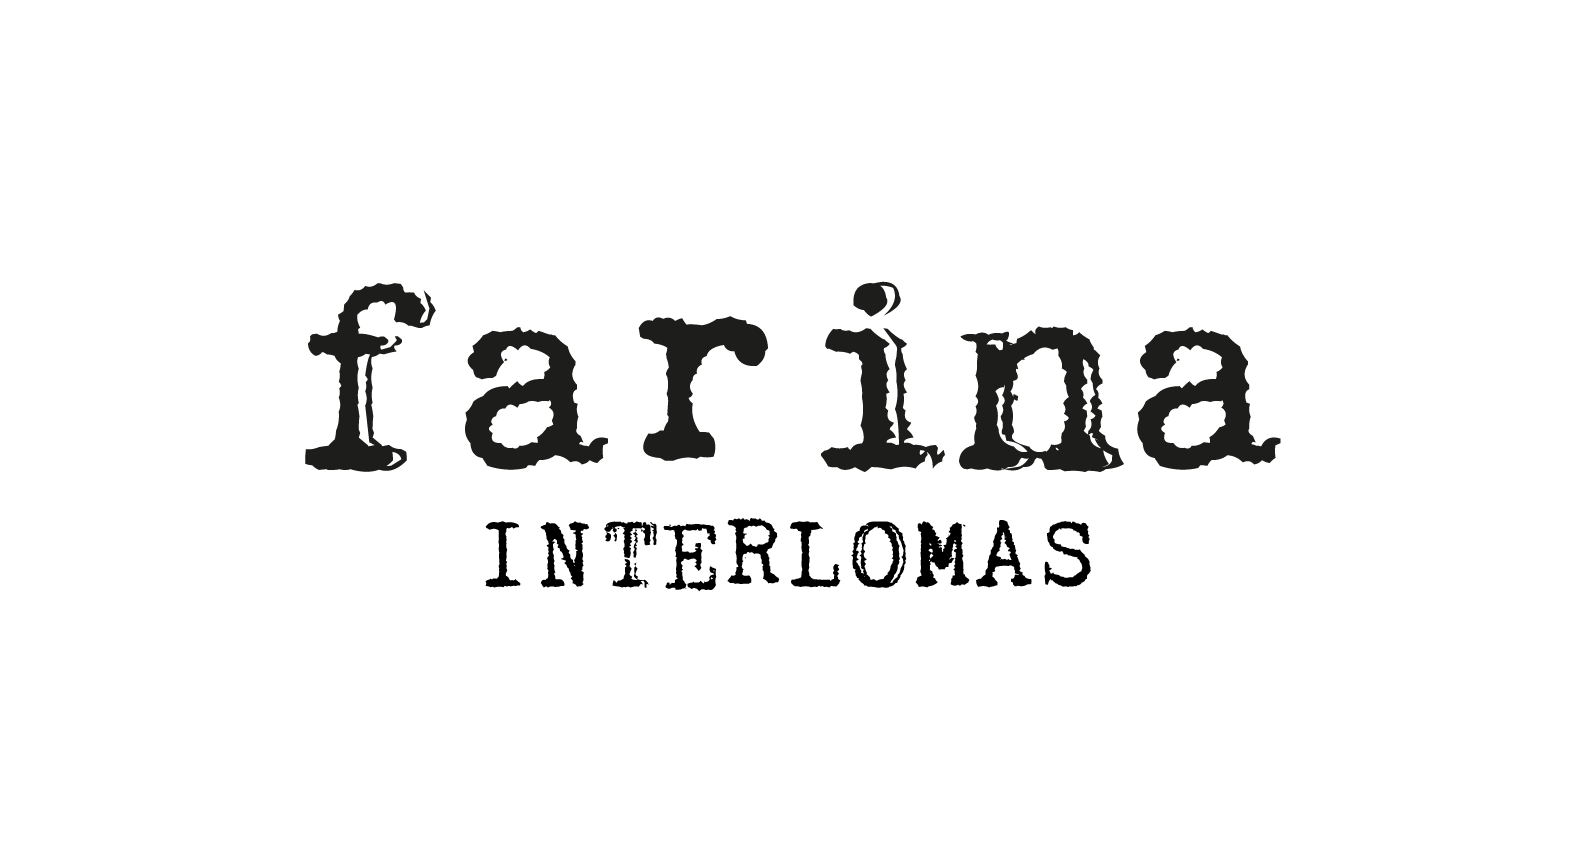 Farina_Interlomas